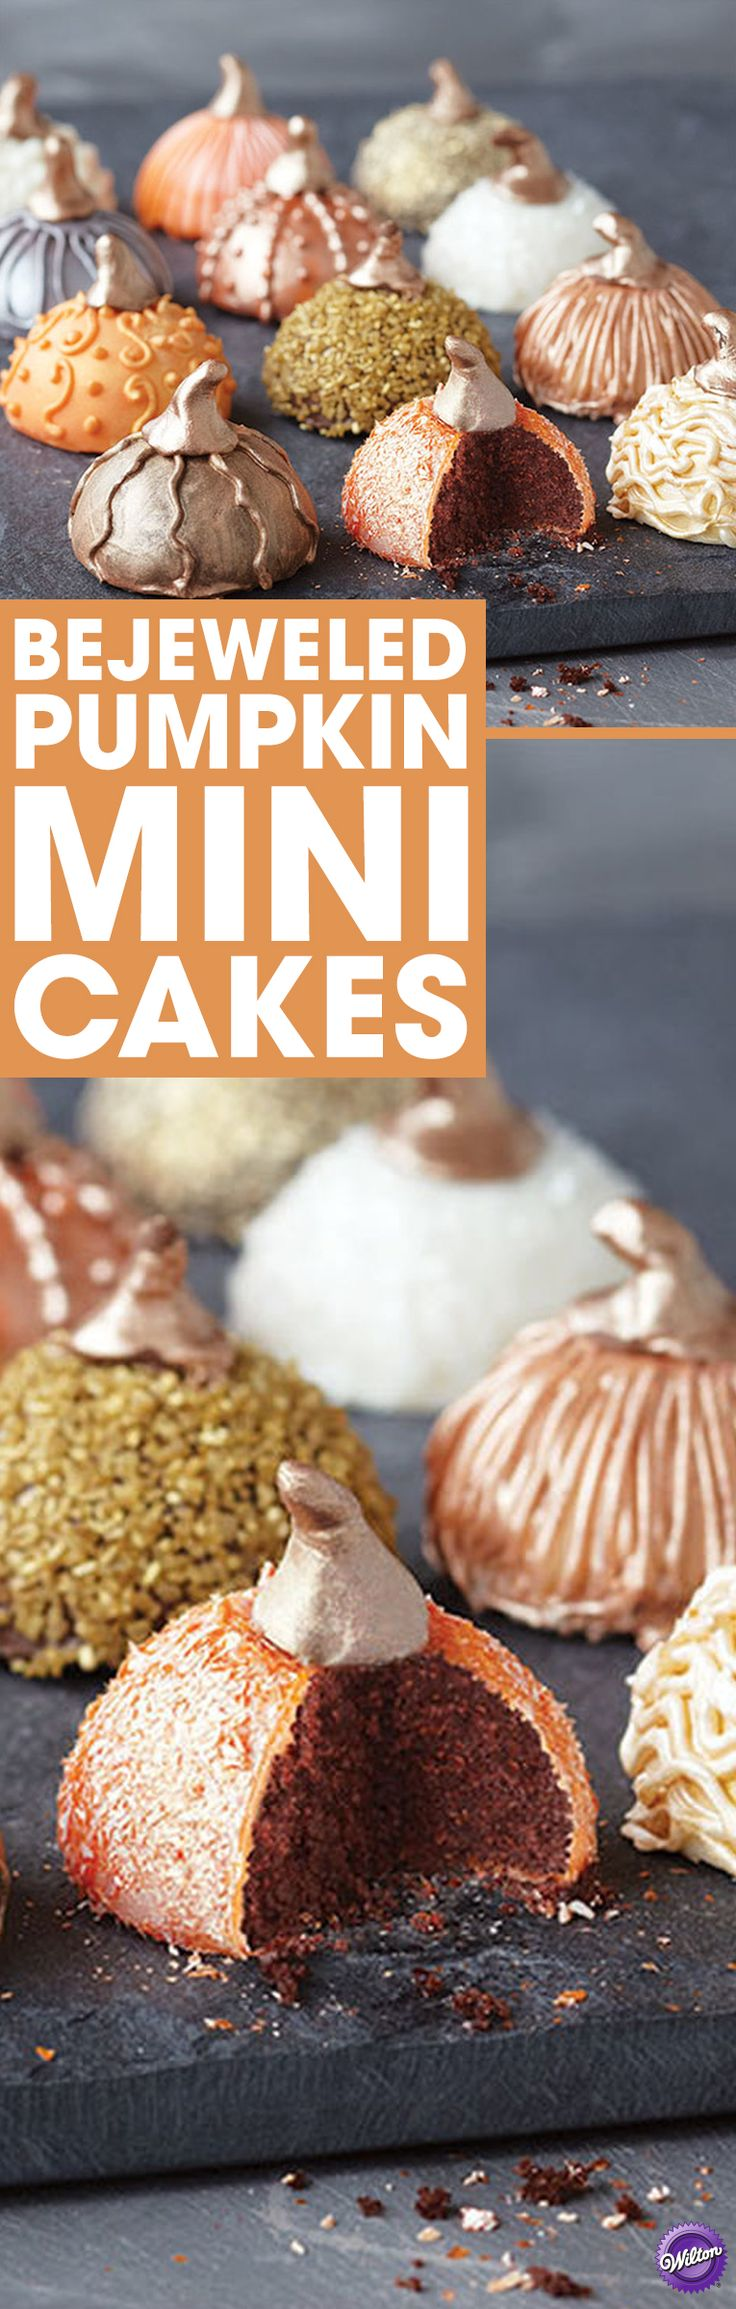 Make these pretty bejeweled pumpkin mini cakes to serve at your Thanksgiving or any fall celebration! These mini cakes have shimmering detail to break through the fog of fall. Use our cake ball pops recipe to create the shape and Pearl Dust, Color Mist and pearlized sugar to add the shining touches.